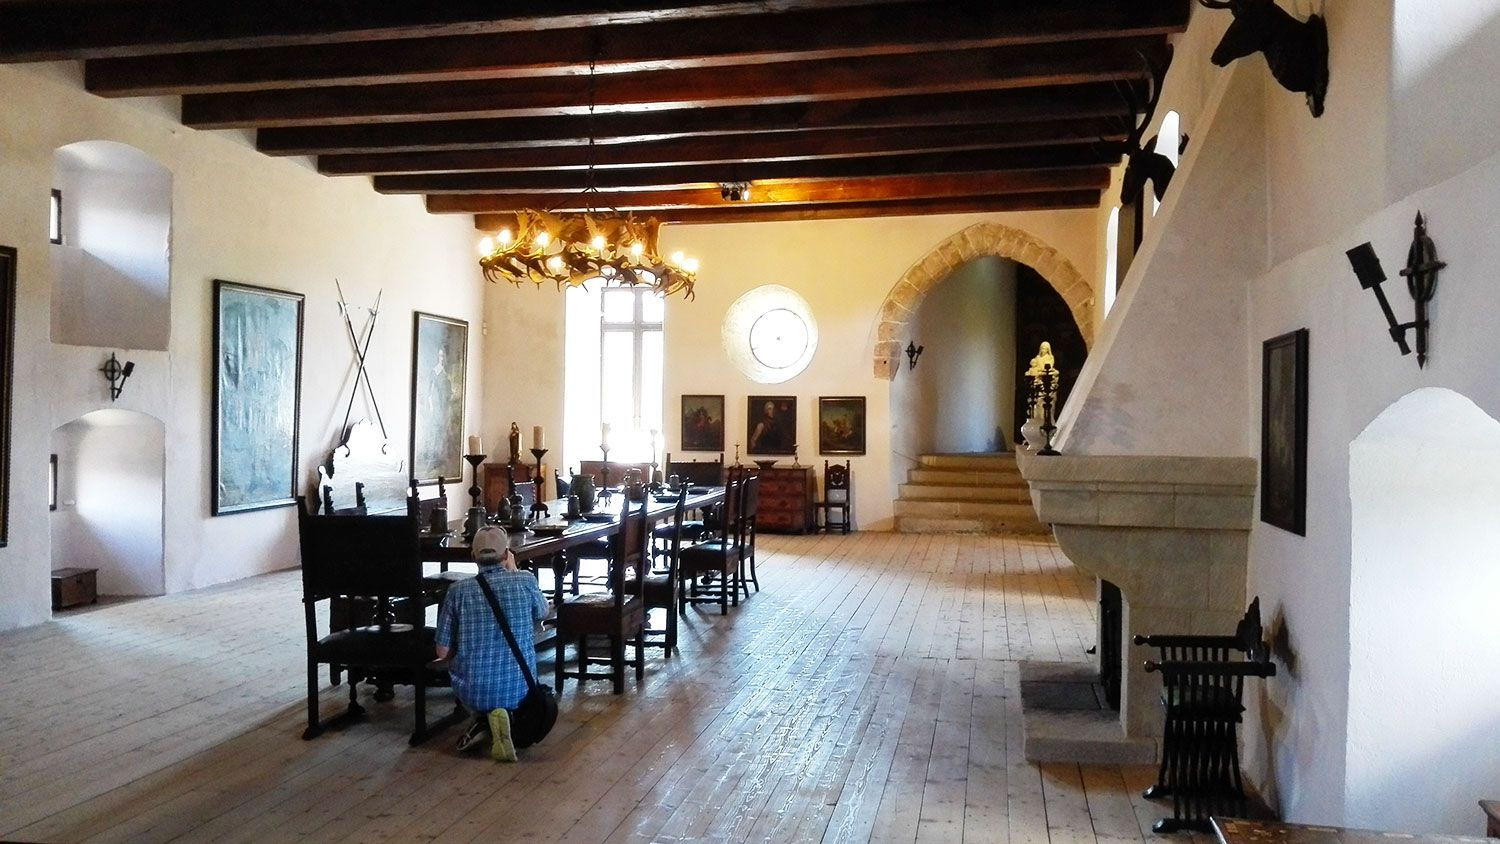 Dining hall in the Castle Kost